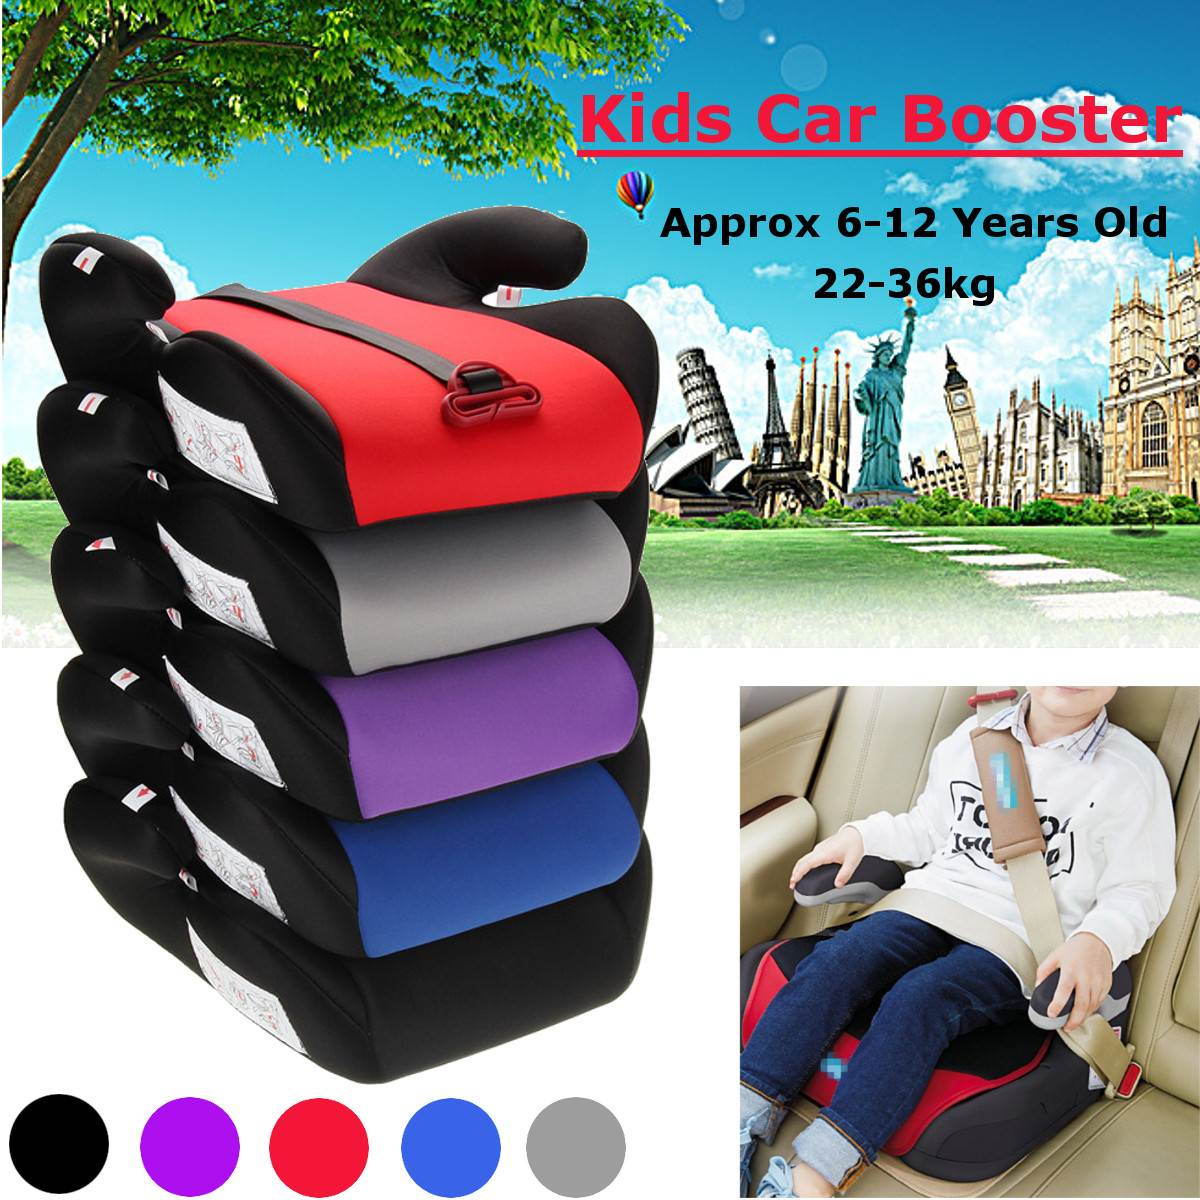 Car Booster Seat Safe Sturdy Kids Children Child Baby Increased Seat Pad Fits 6-12 Years Multi-color Car Non-slip Booster Seat